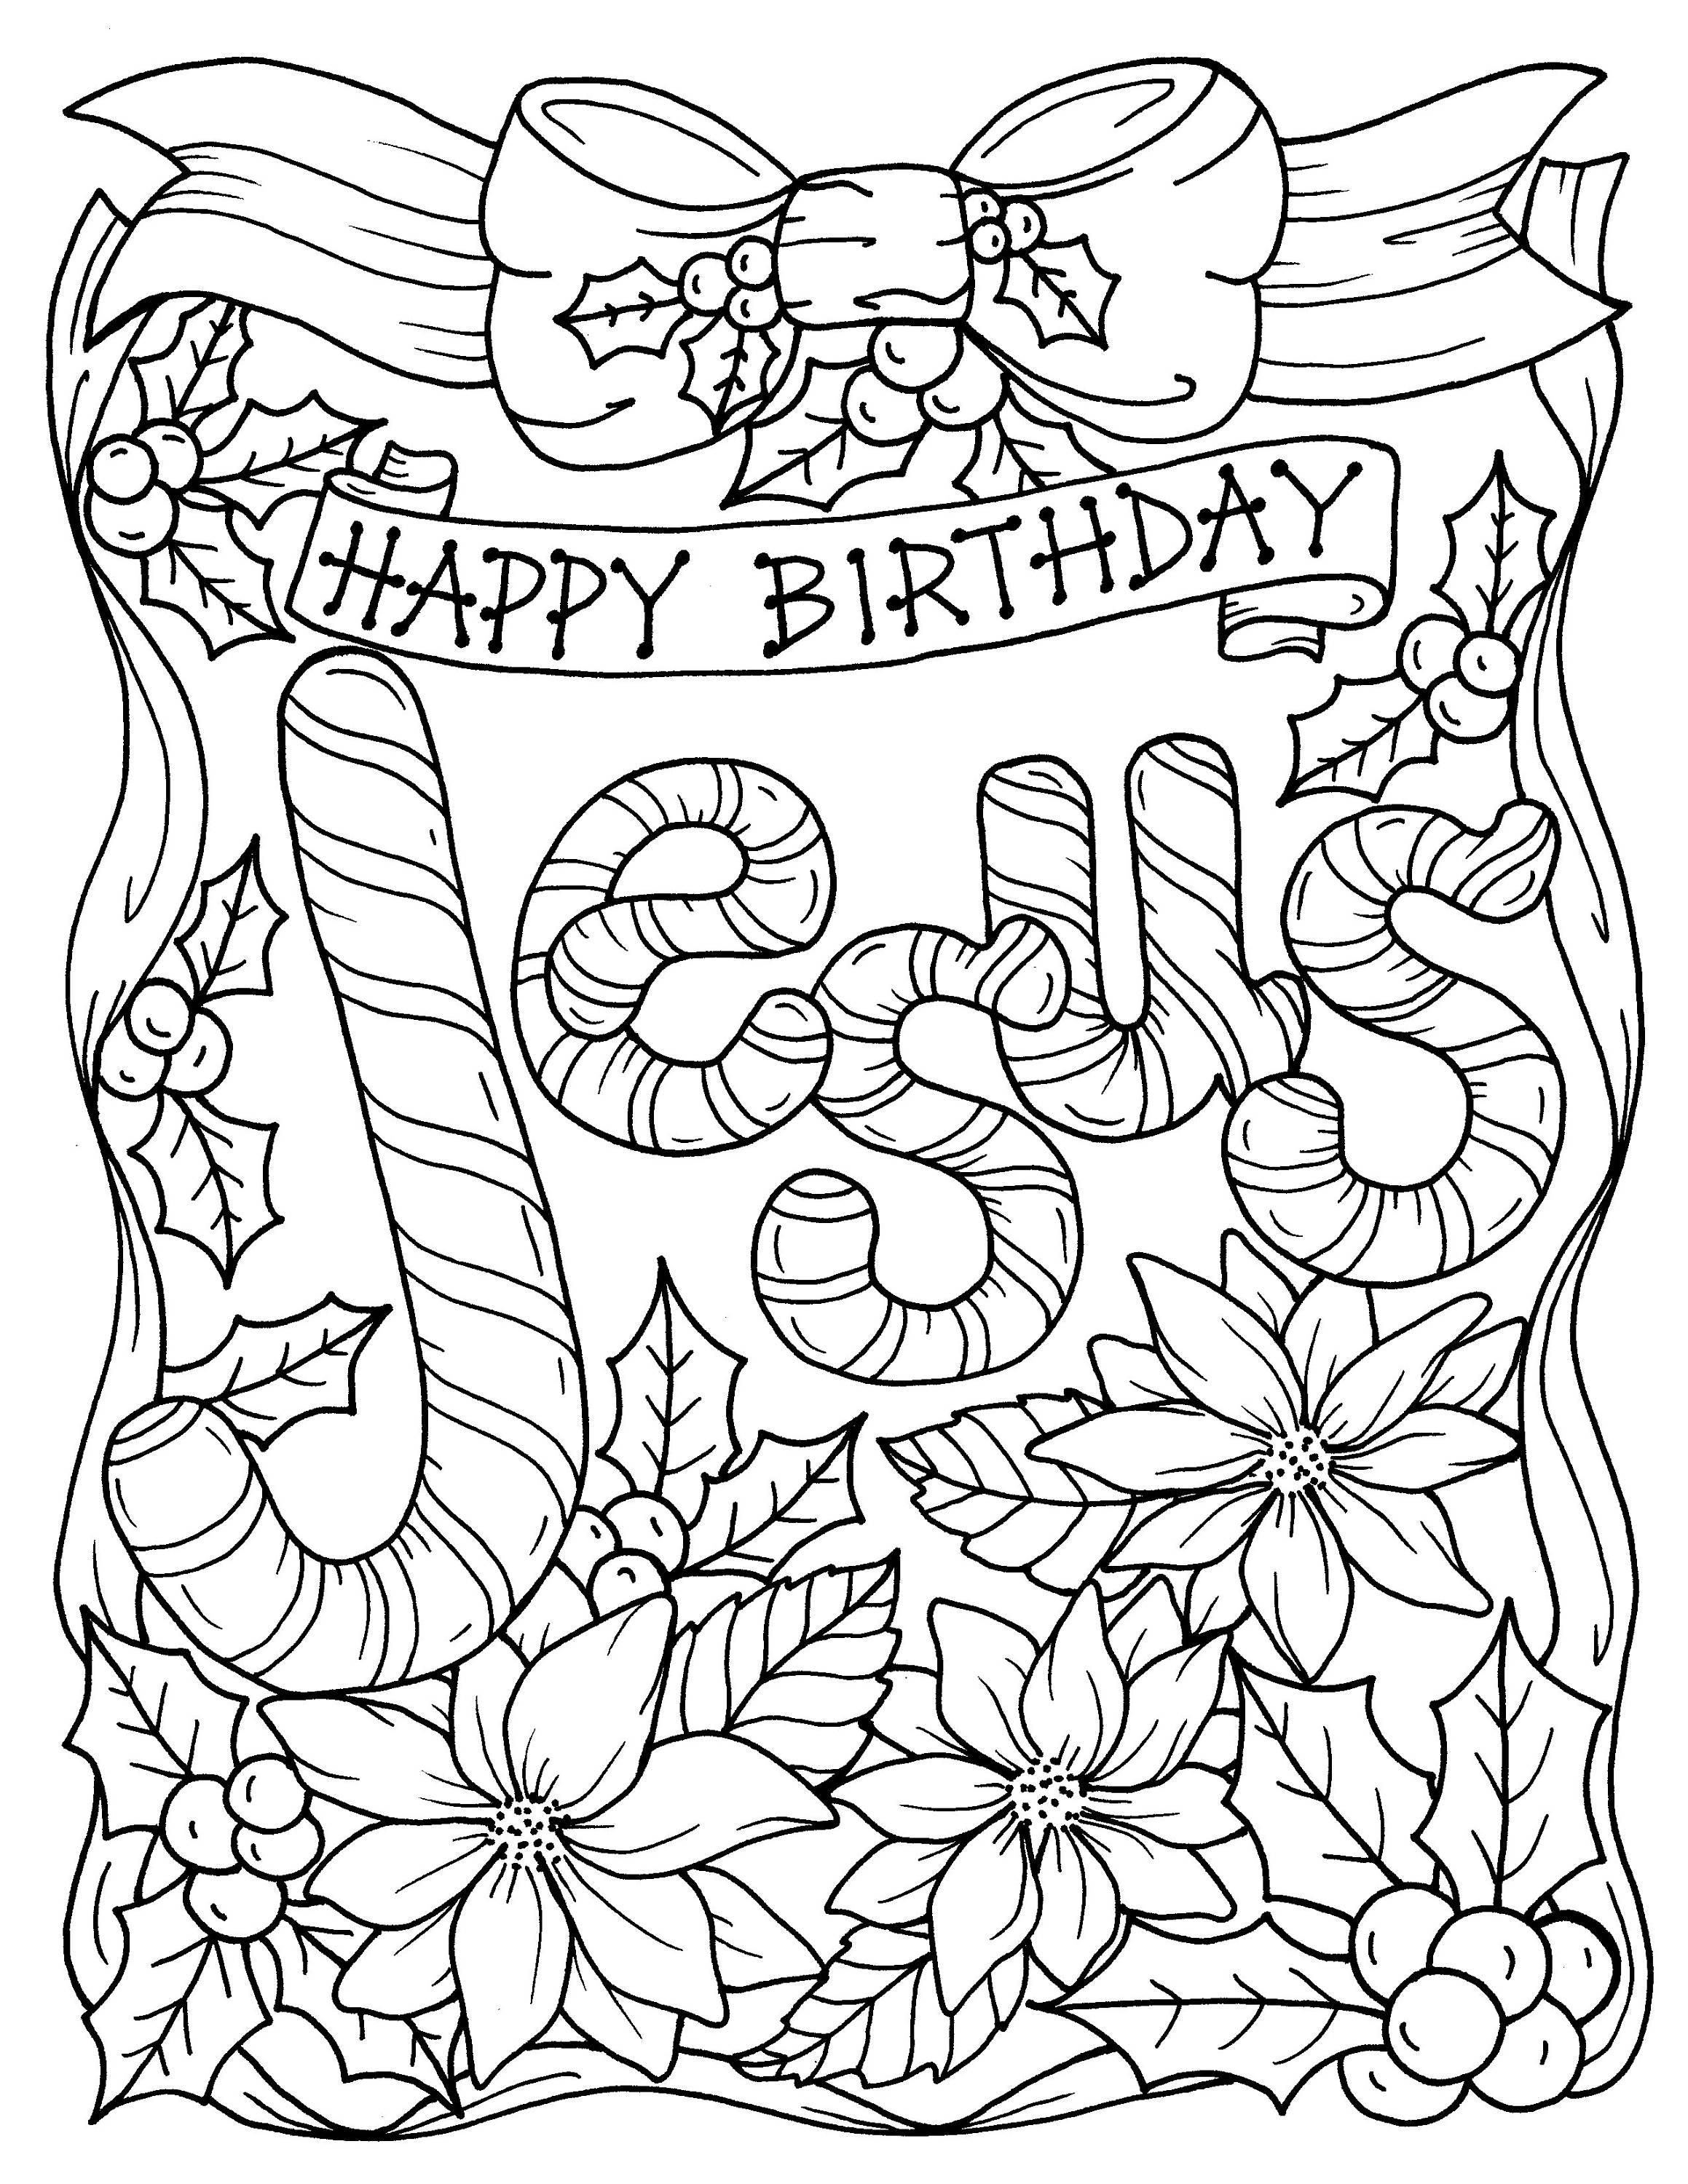 free christian coloring sheets old testament coloring pages to print christian sheets coloring free